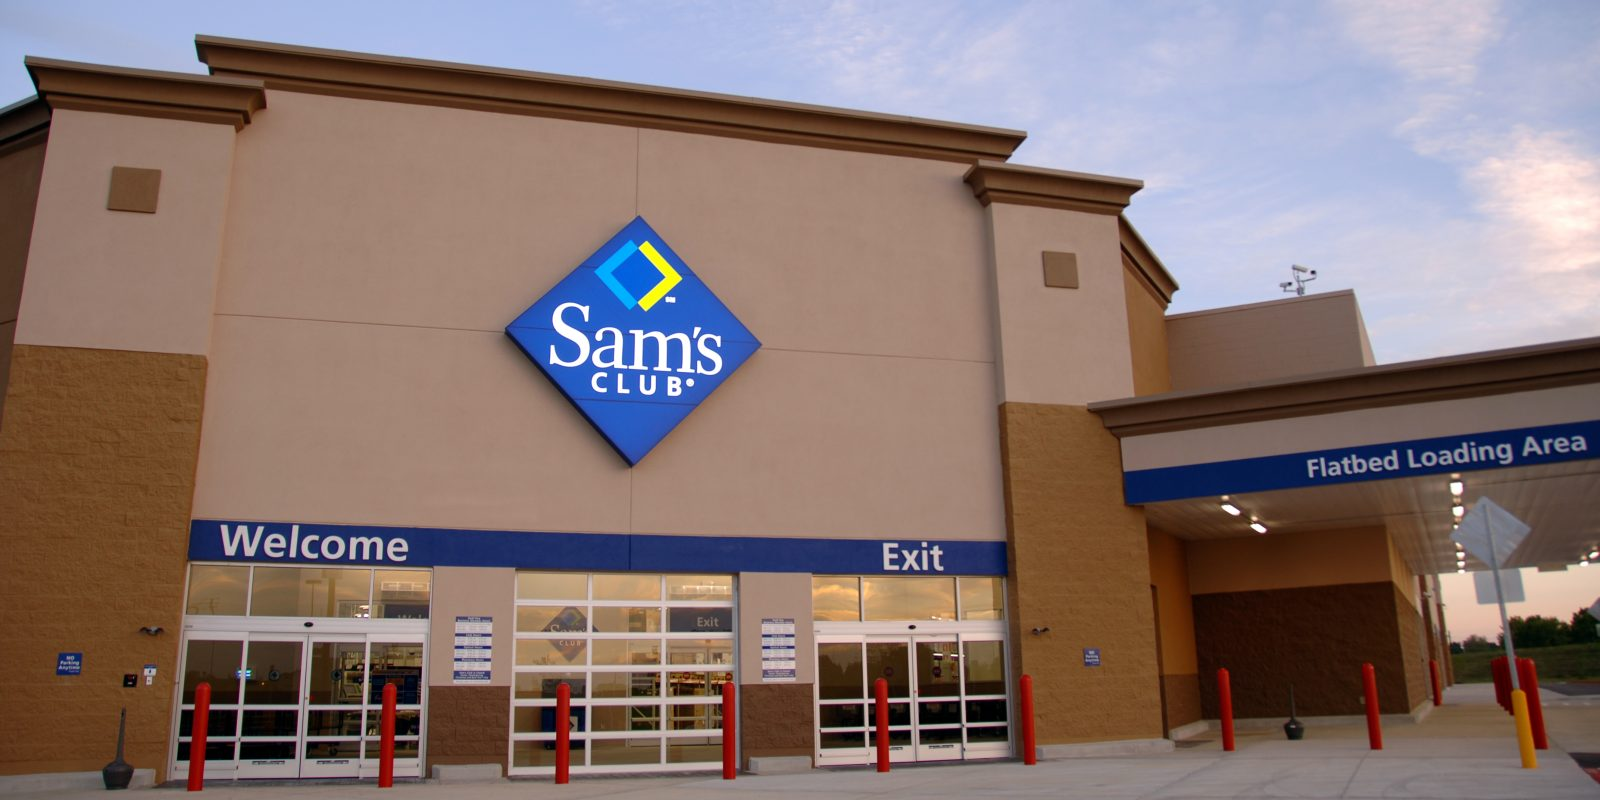 Sam's Club 1-year Membership + gift cards, more from $35 ($55+ value)